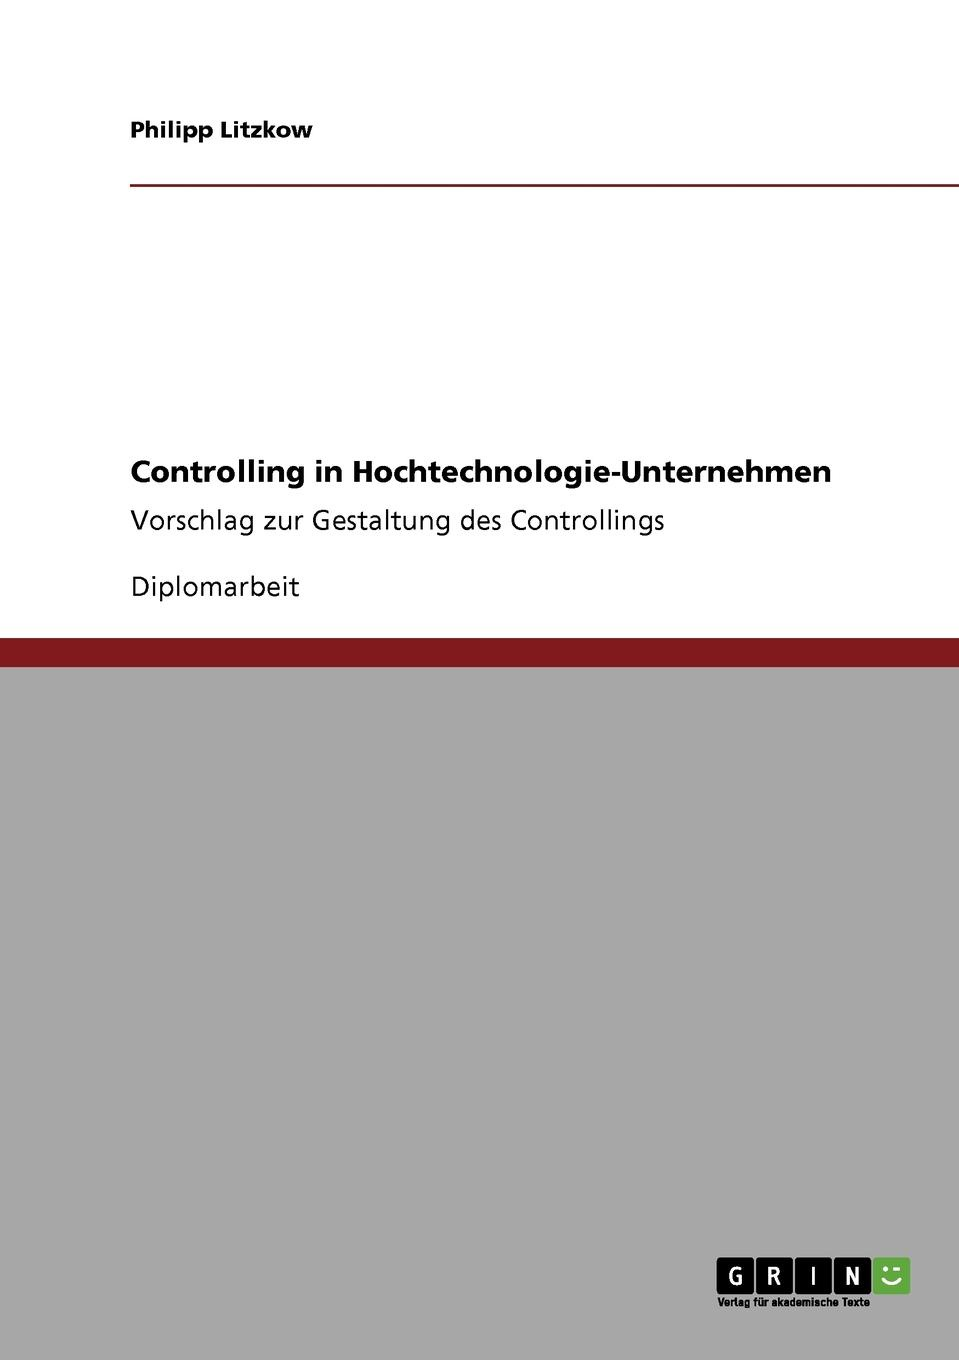 Philipp Litzkow Controlling in Hochtechnologie-Unternehmen kinji mori concept oriented research and development in information technology